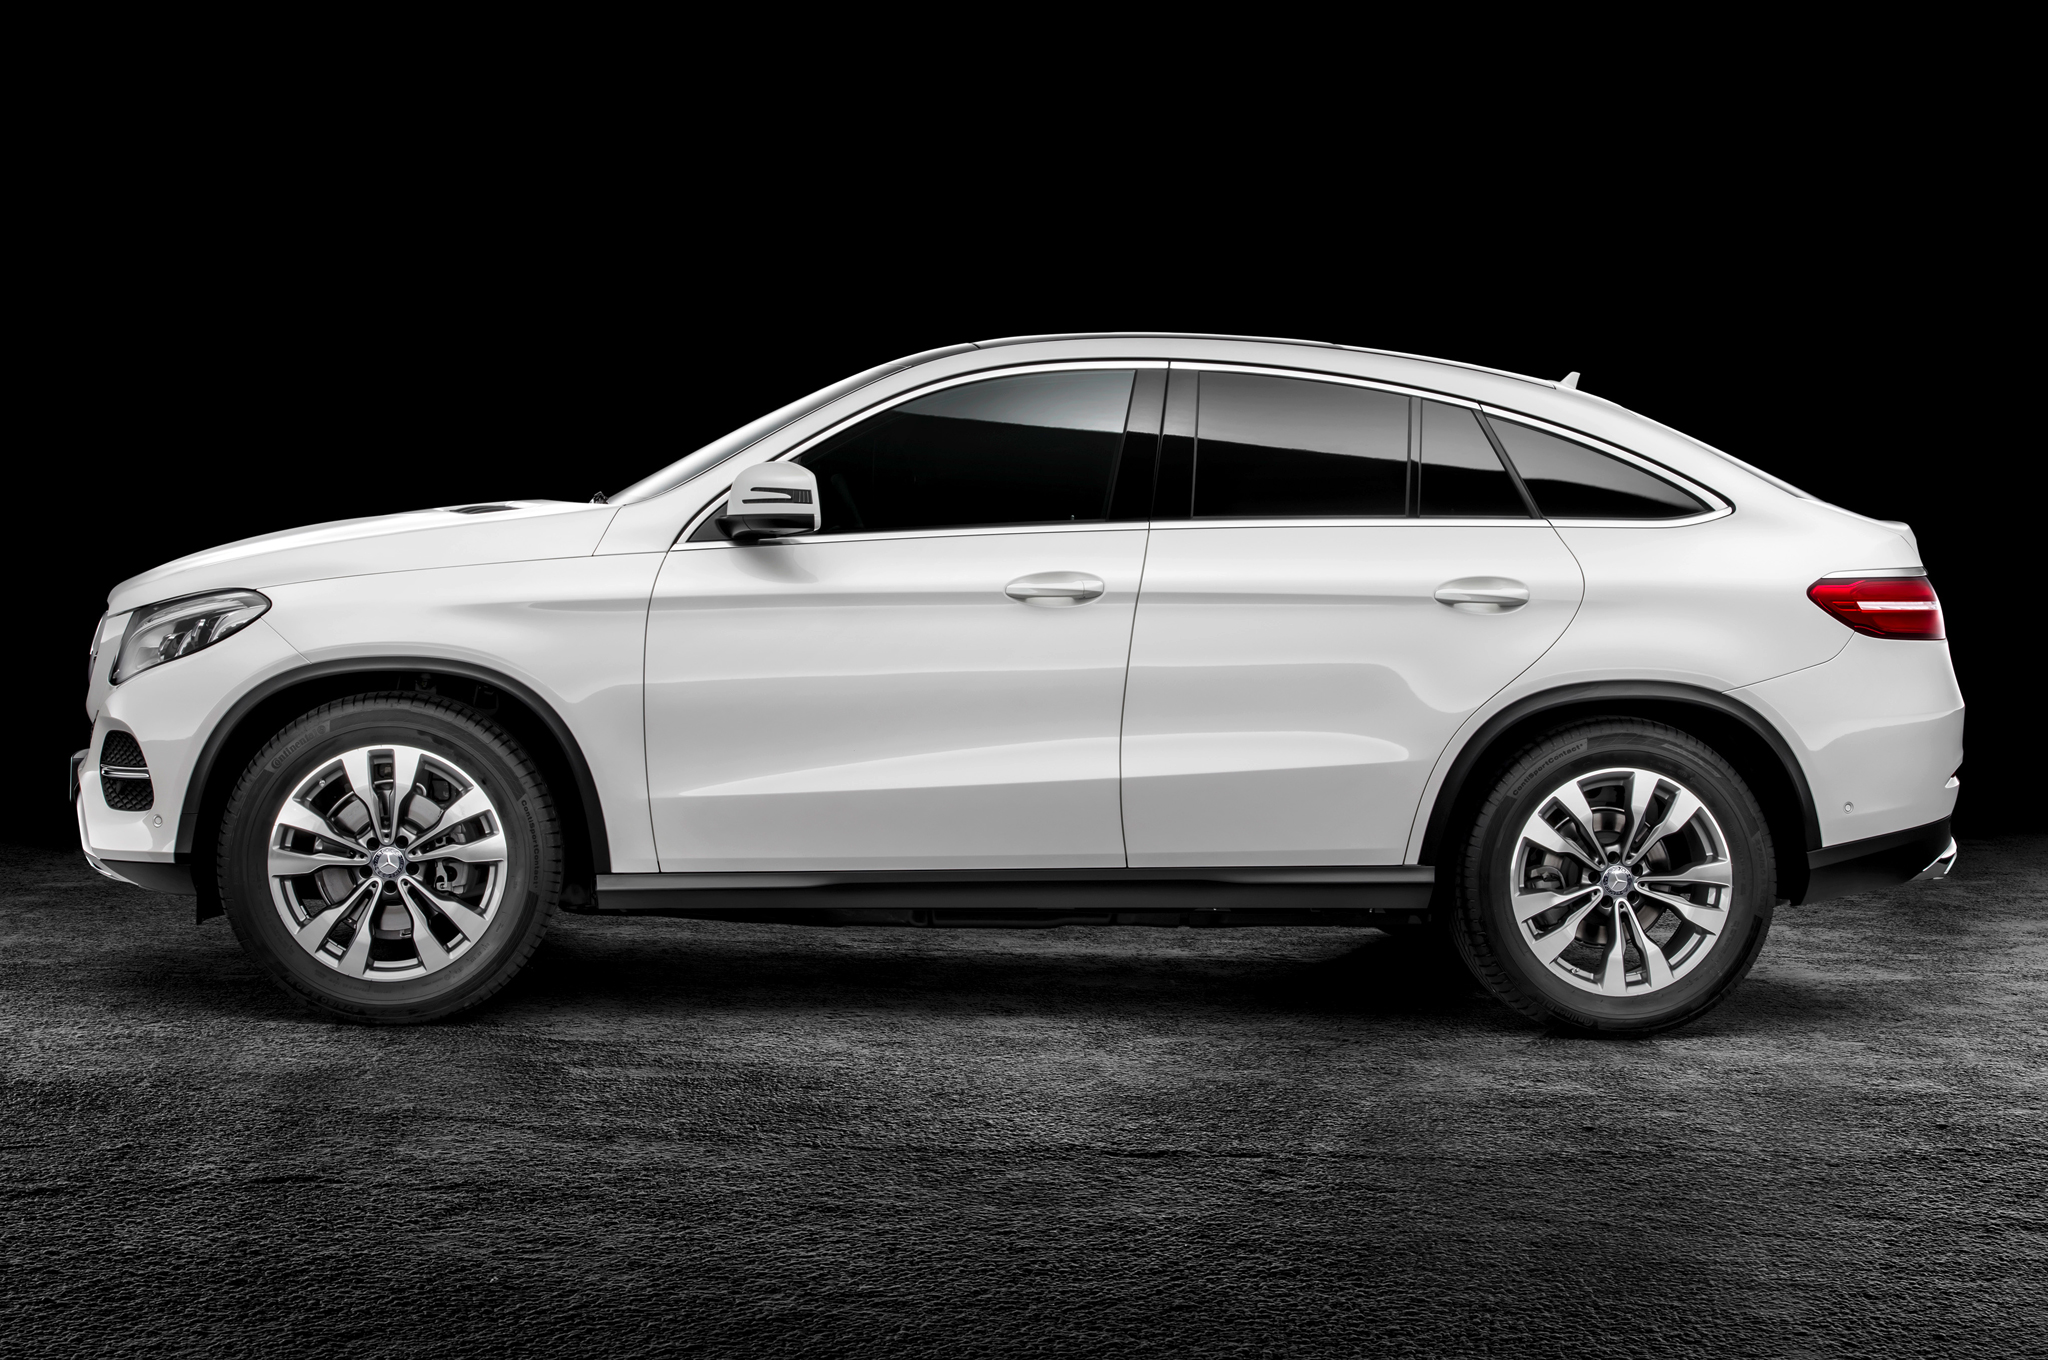 2016 Mercedes Benz Amg Gle63s Coupe Side Profile (Photo 8 of 8)